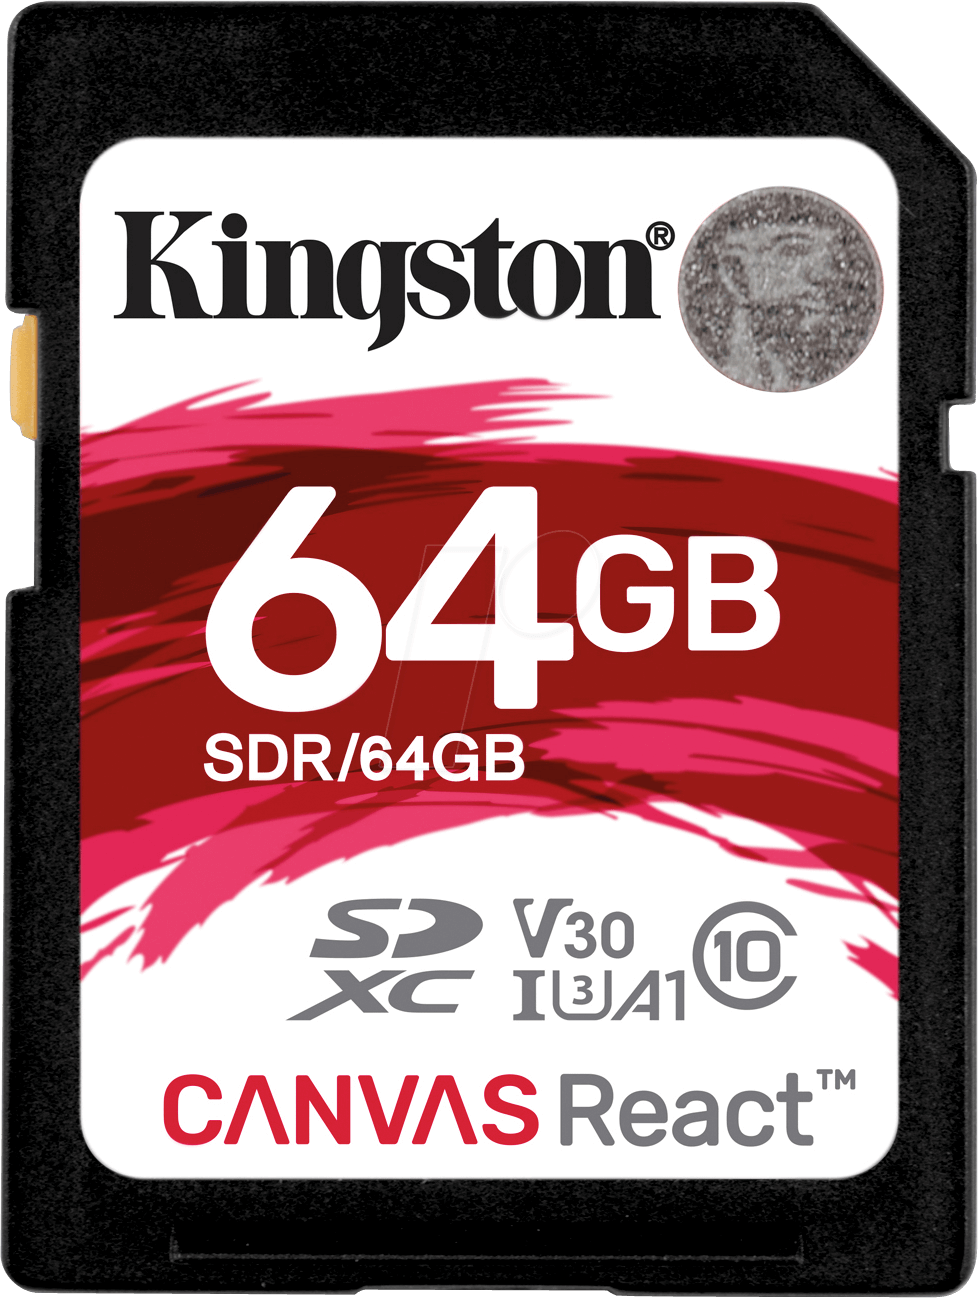 https://cdn-reichelt.de/bilder/web/xxl_ws/E200/KINGSTON_SDR64GB_02.png